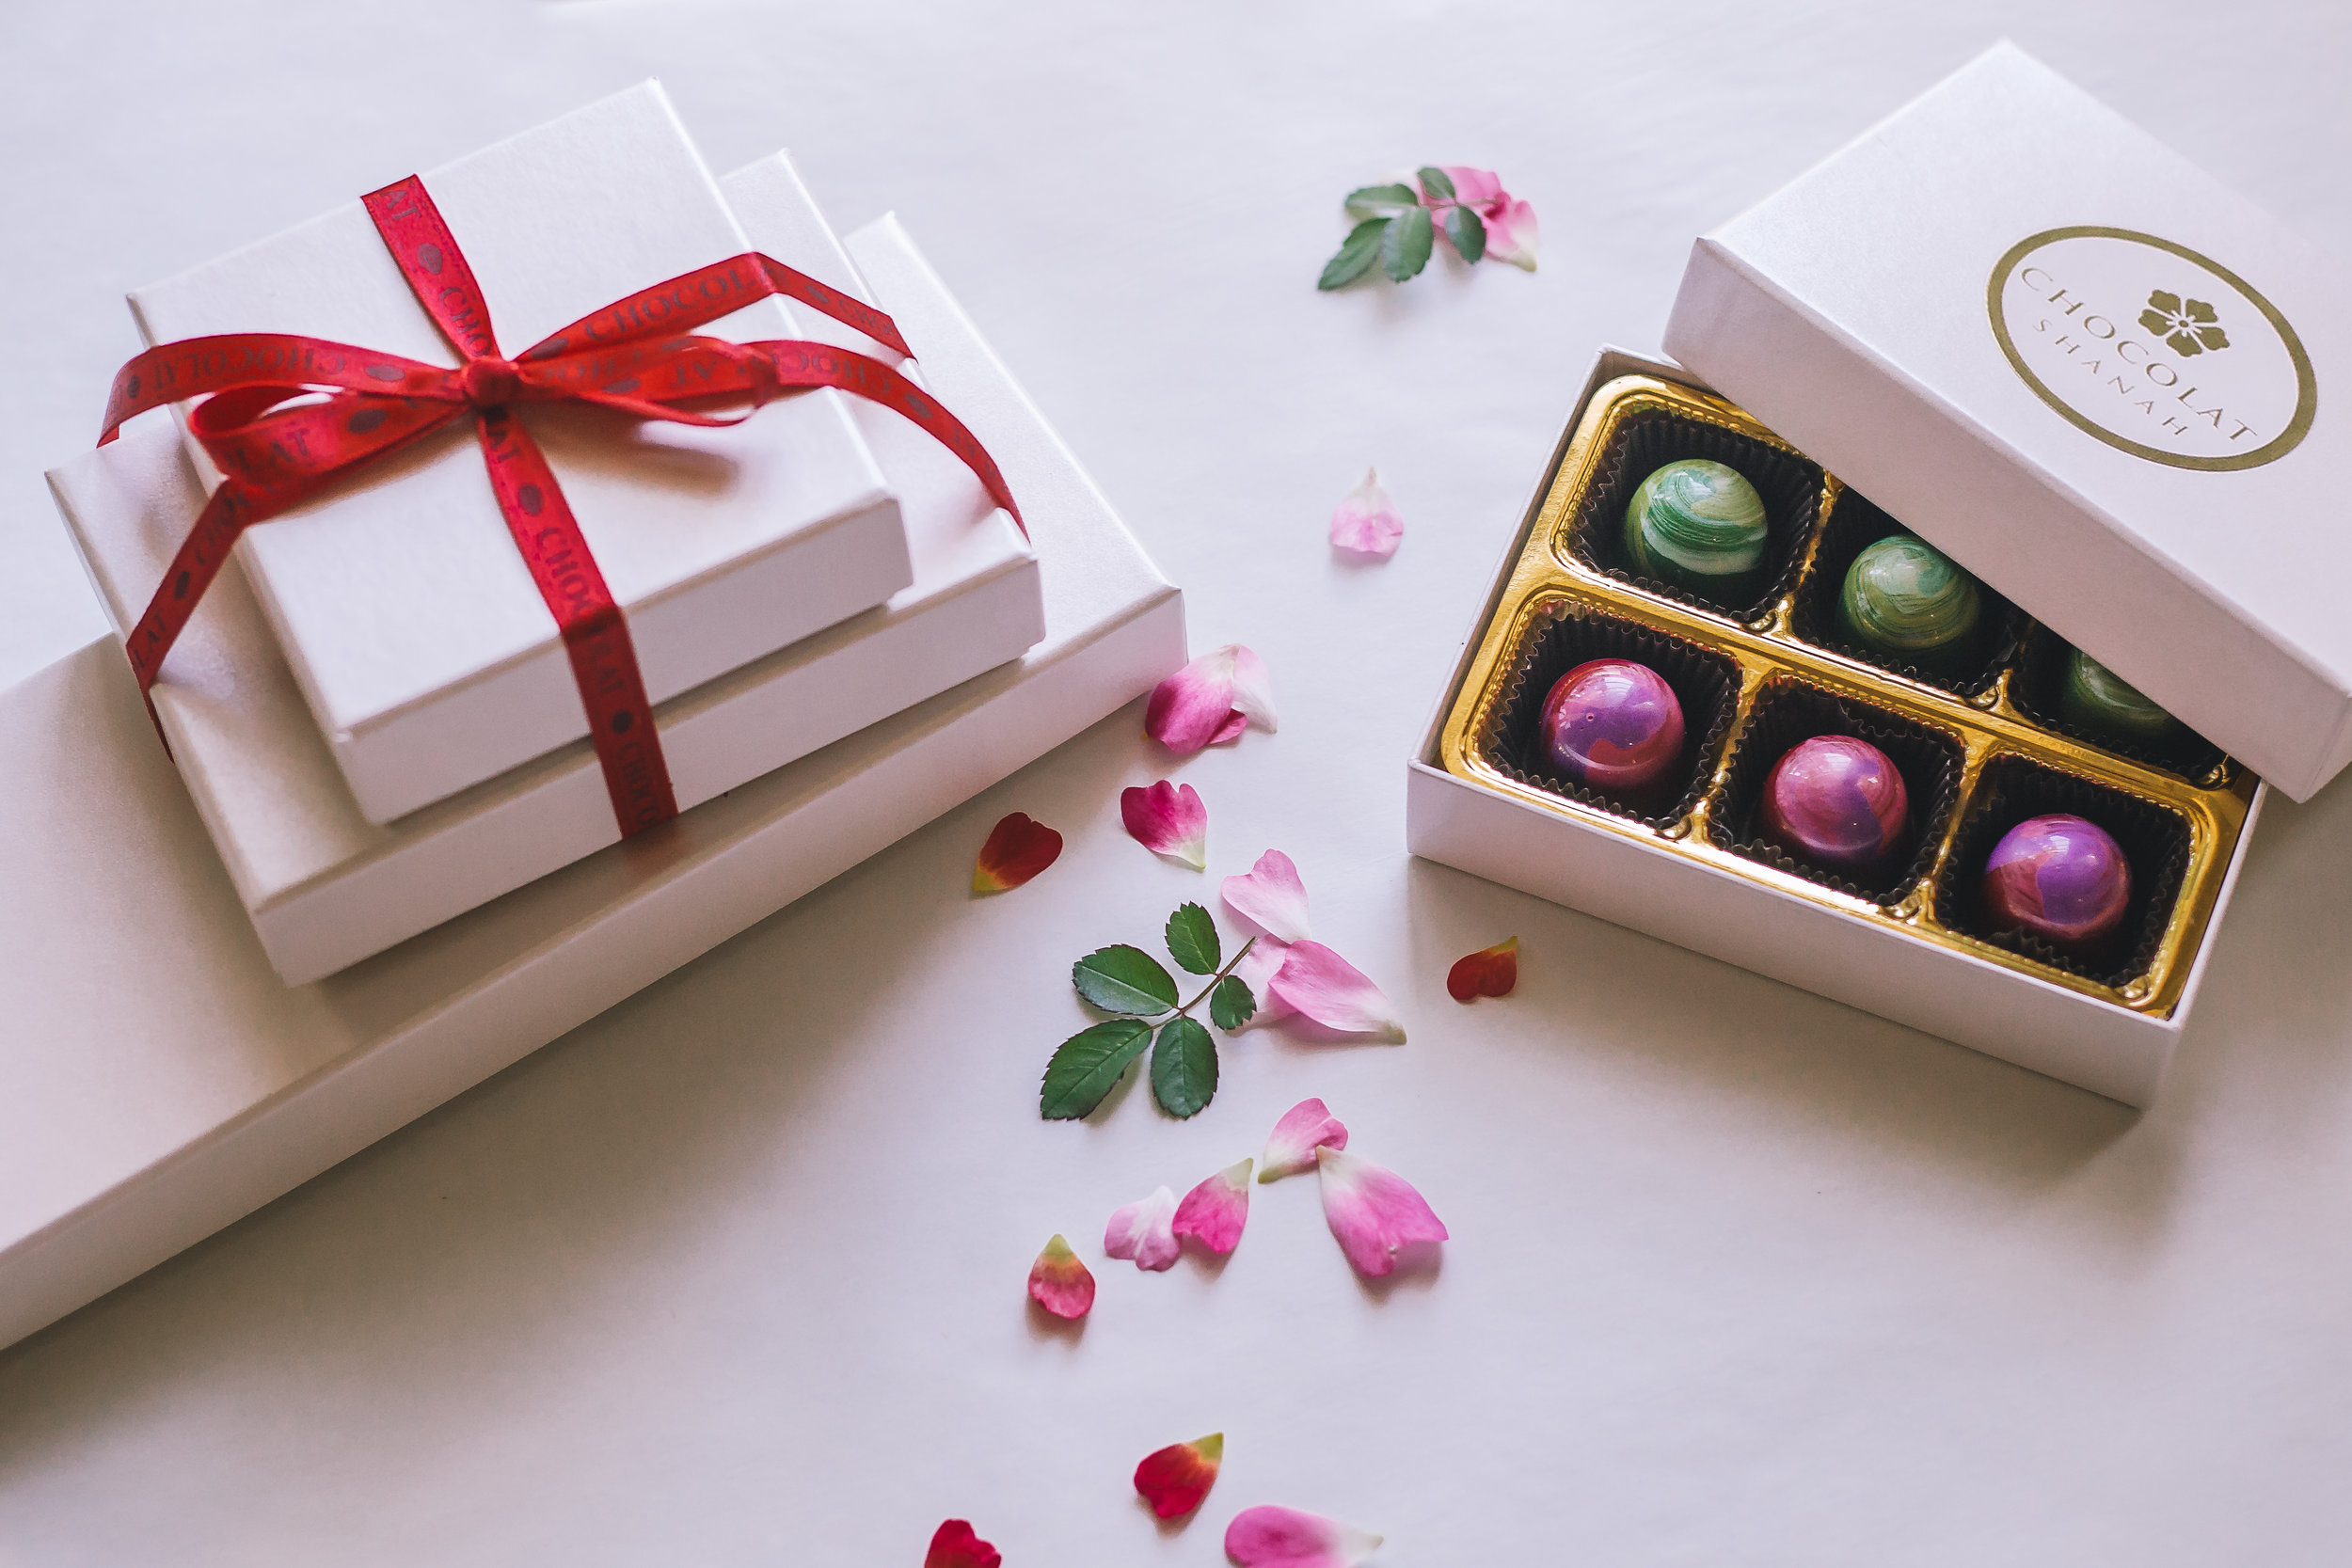 Our Chocolate Bonbons Are  Beautiful & Delicious - Our handmade chocolate bonbons make as much of an impression on the eyes as they do on your taste-buds! See our full list of flavors!